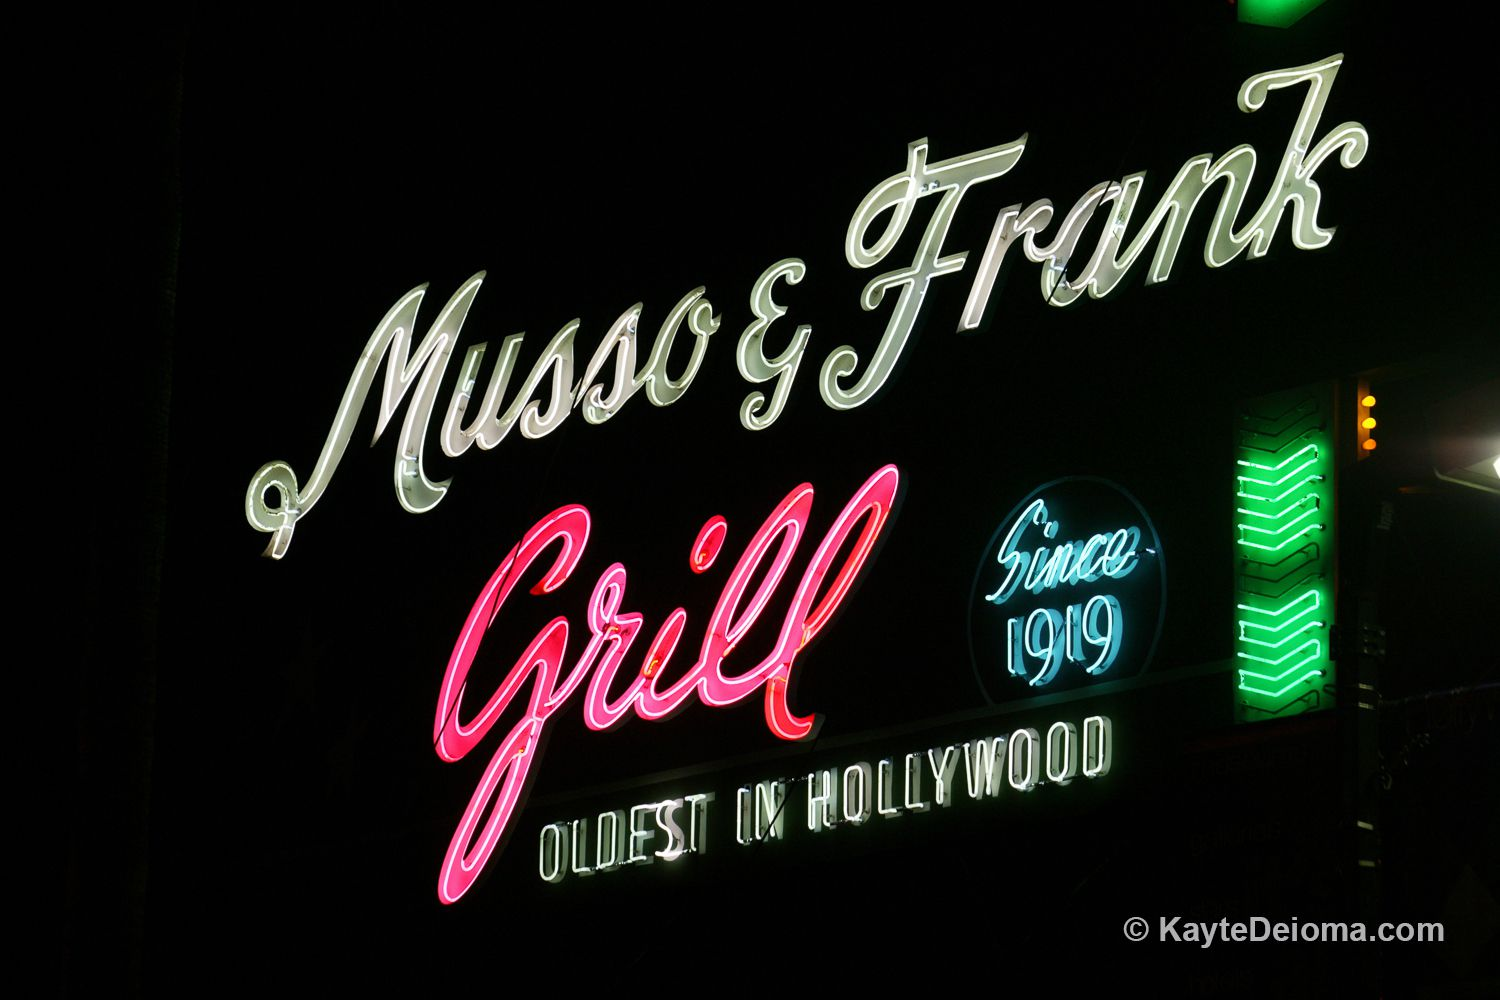 Musso & Frank Grill in Hollywood